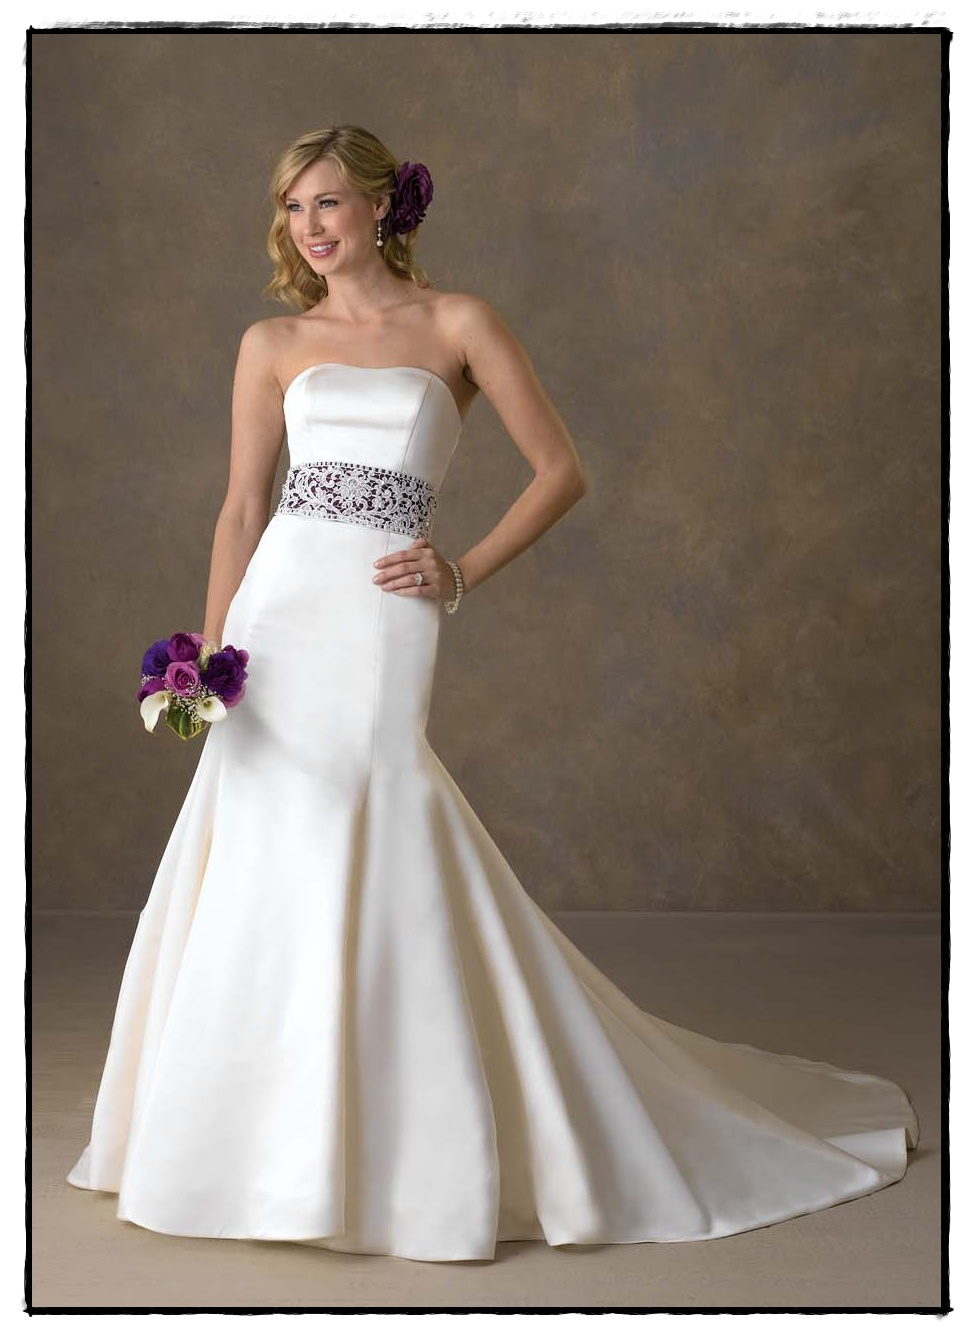 Wedding Gowns With Color Sash Mother Of The Bride Dresses